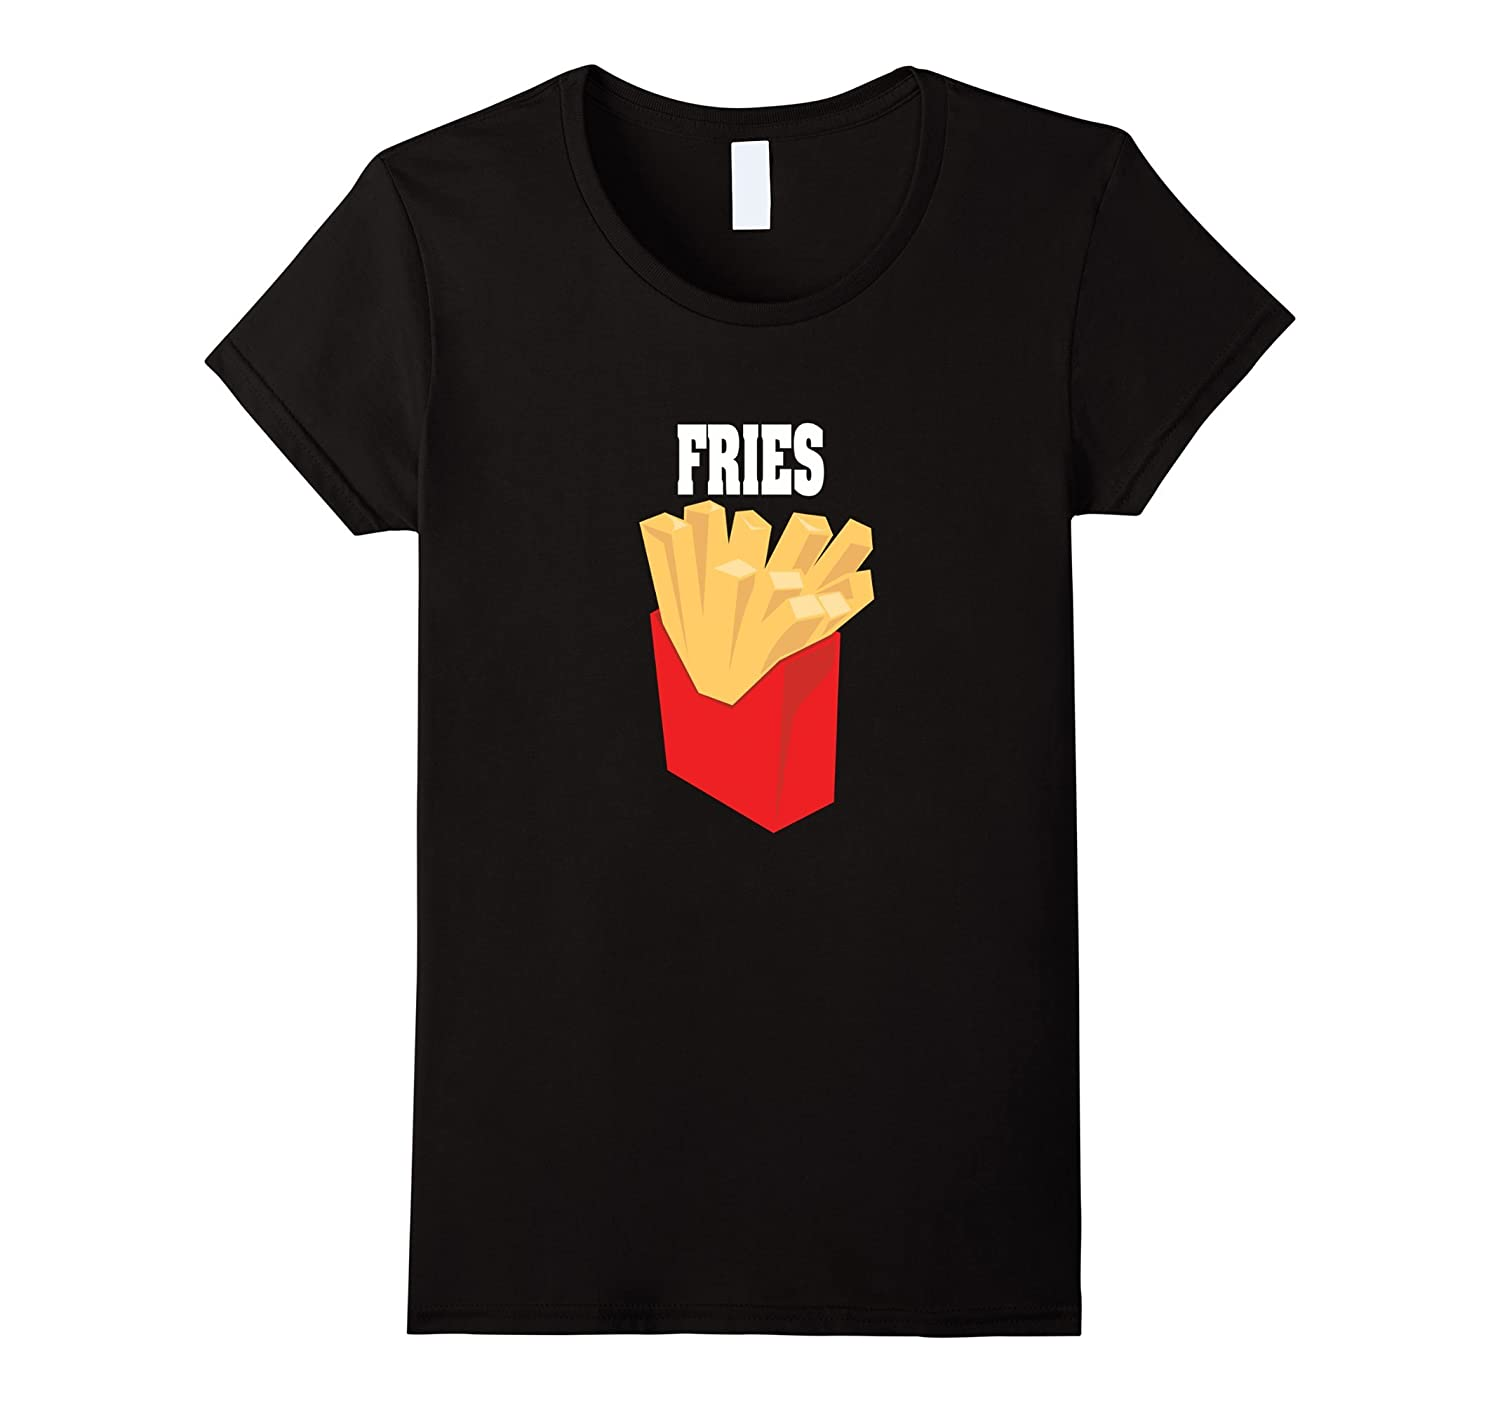 French Fries Couples Halloween Costume Shirt Burger & Fries